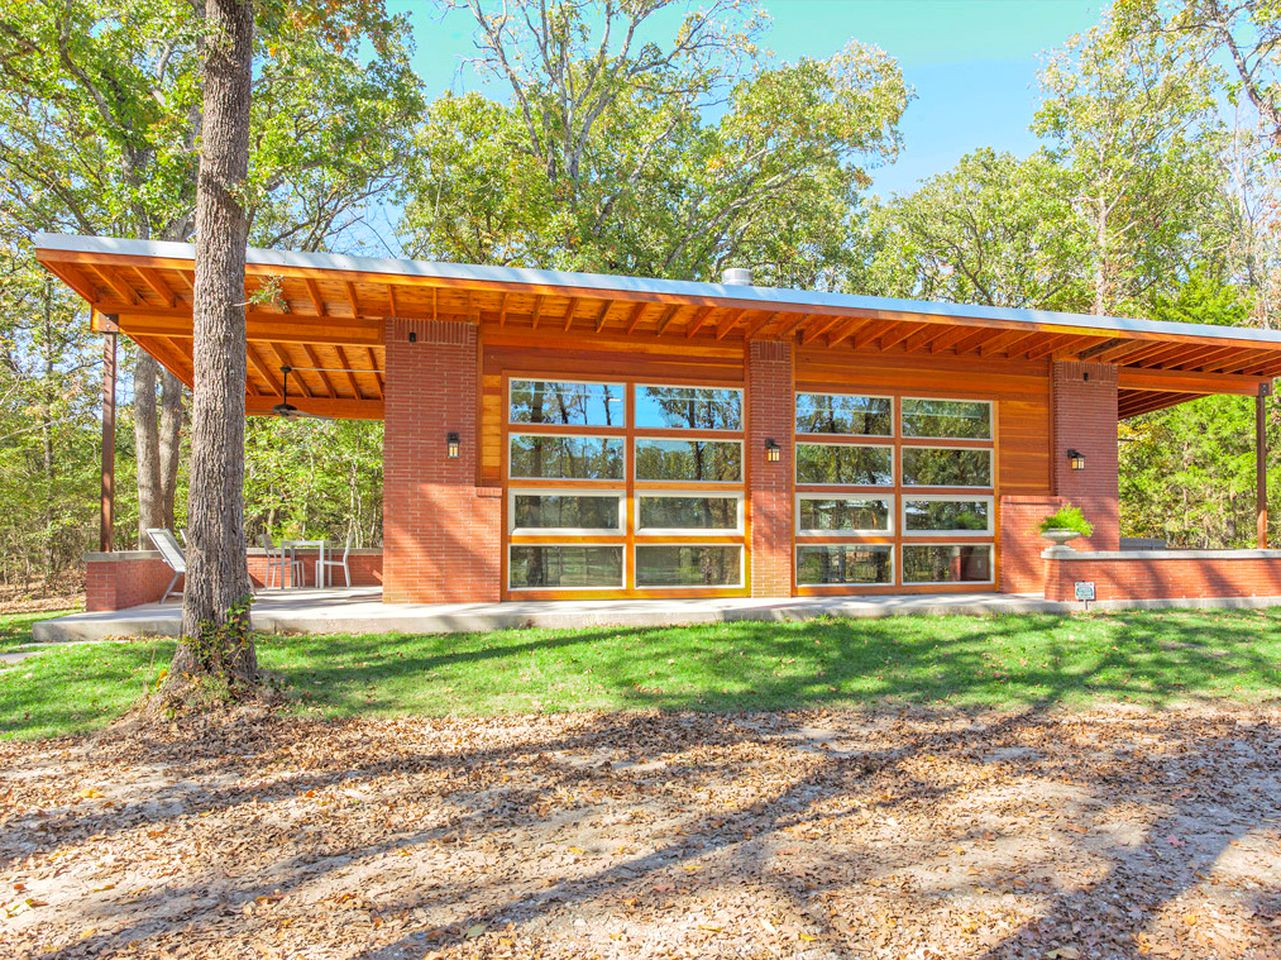 Cabin rental inspired by Frank Lloyd Wright, in Texas for a weekend getaway from Dallas.